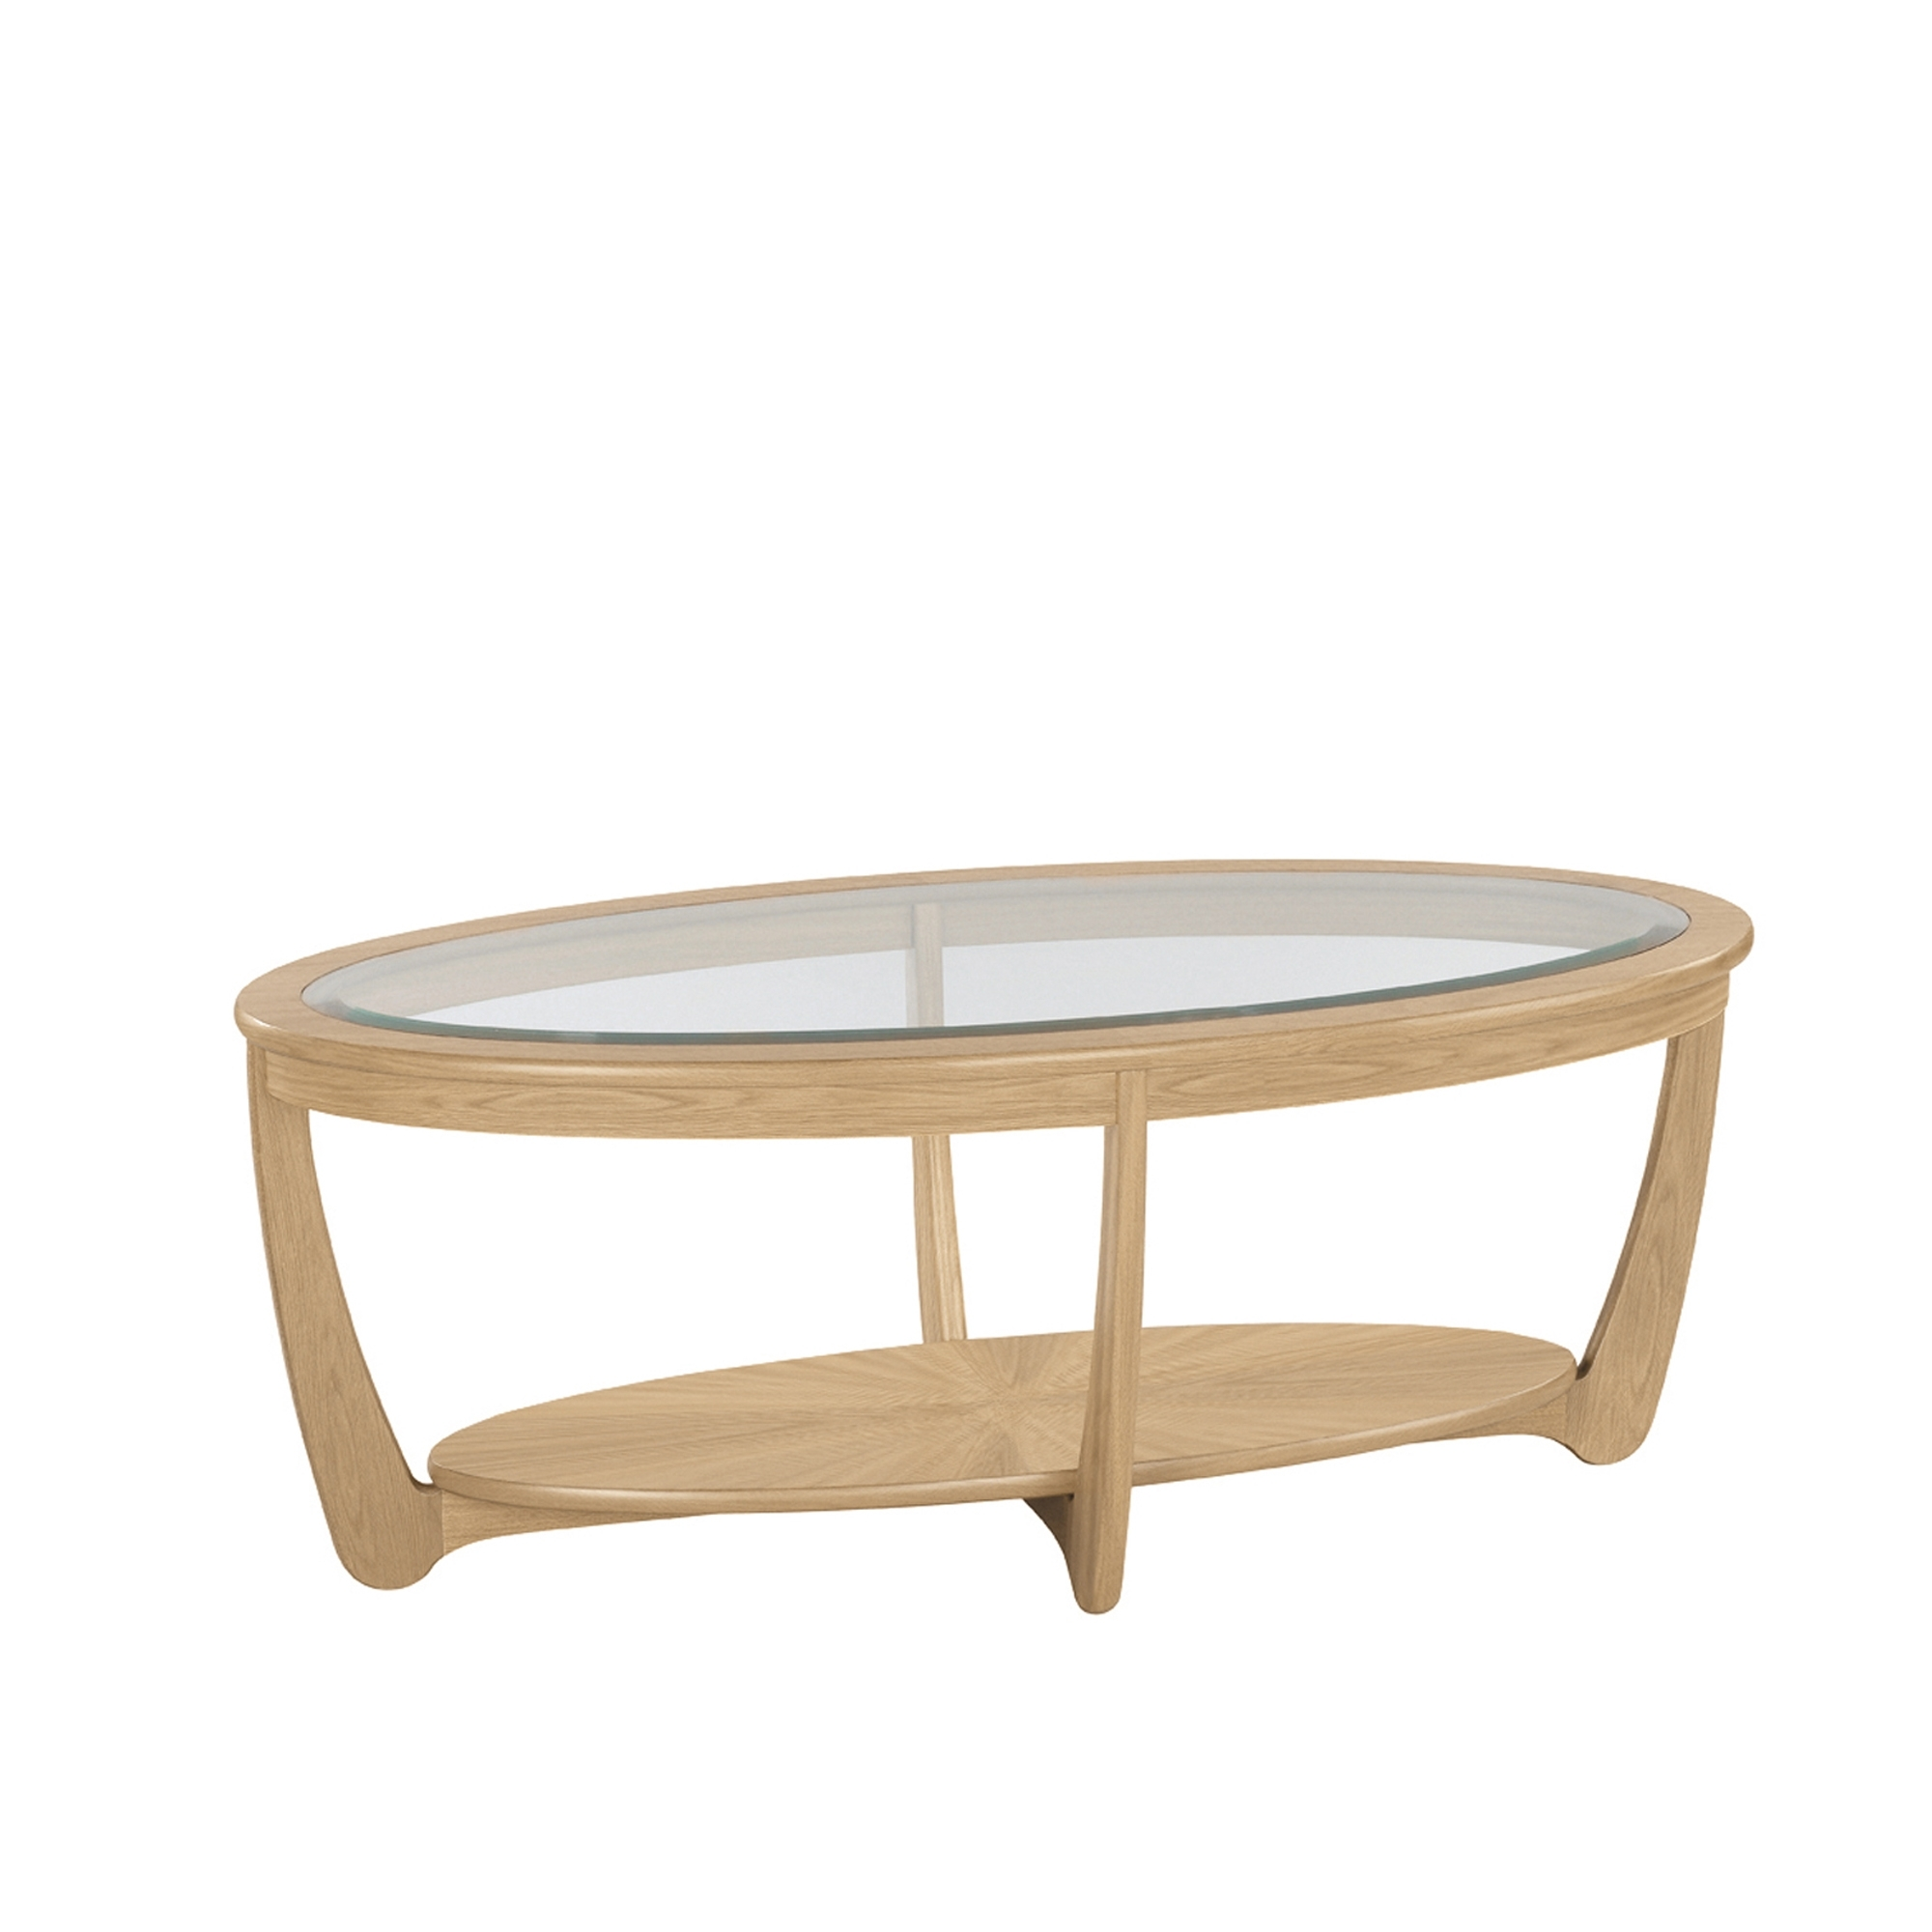 Nathan shades oak glass top oval coffee table coffee tables cookes furniture Coffee tables glass top